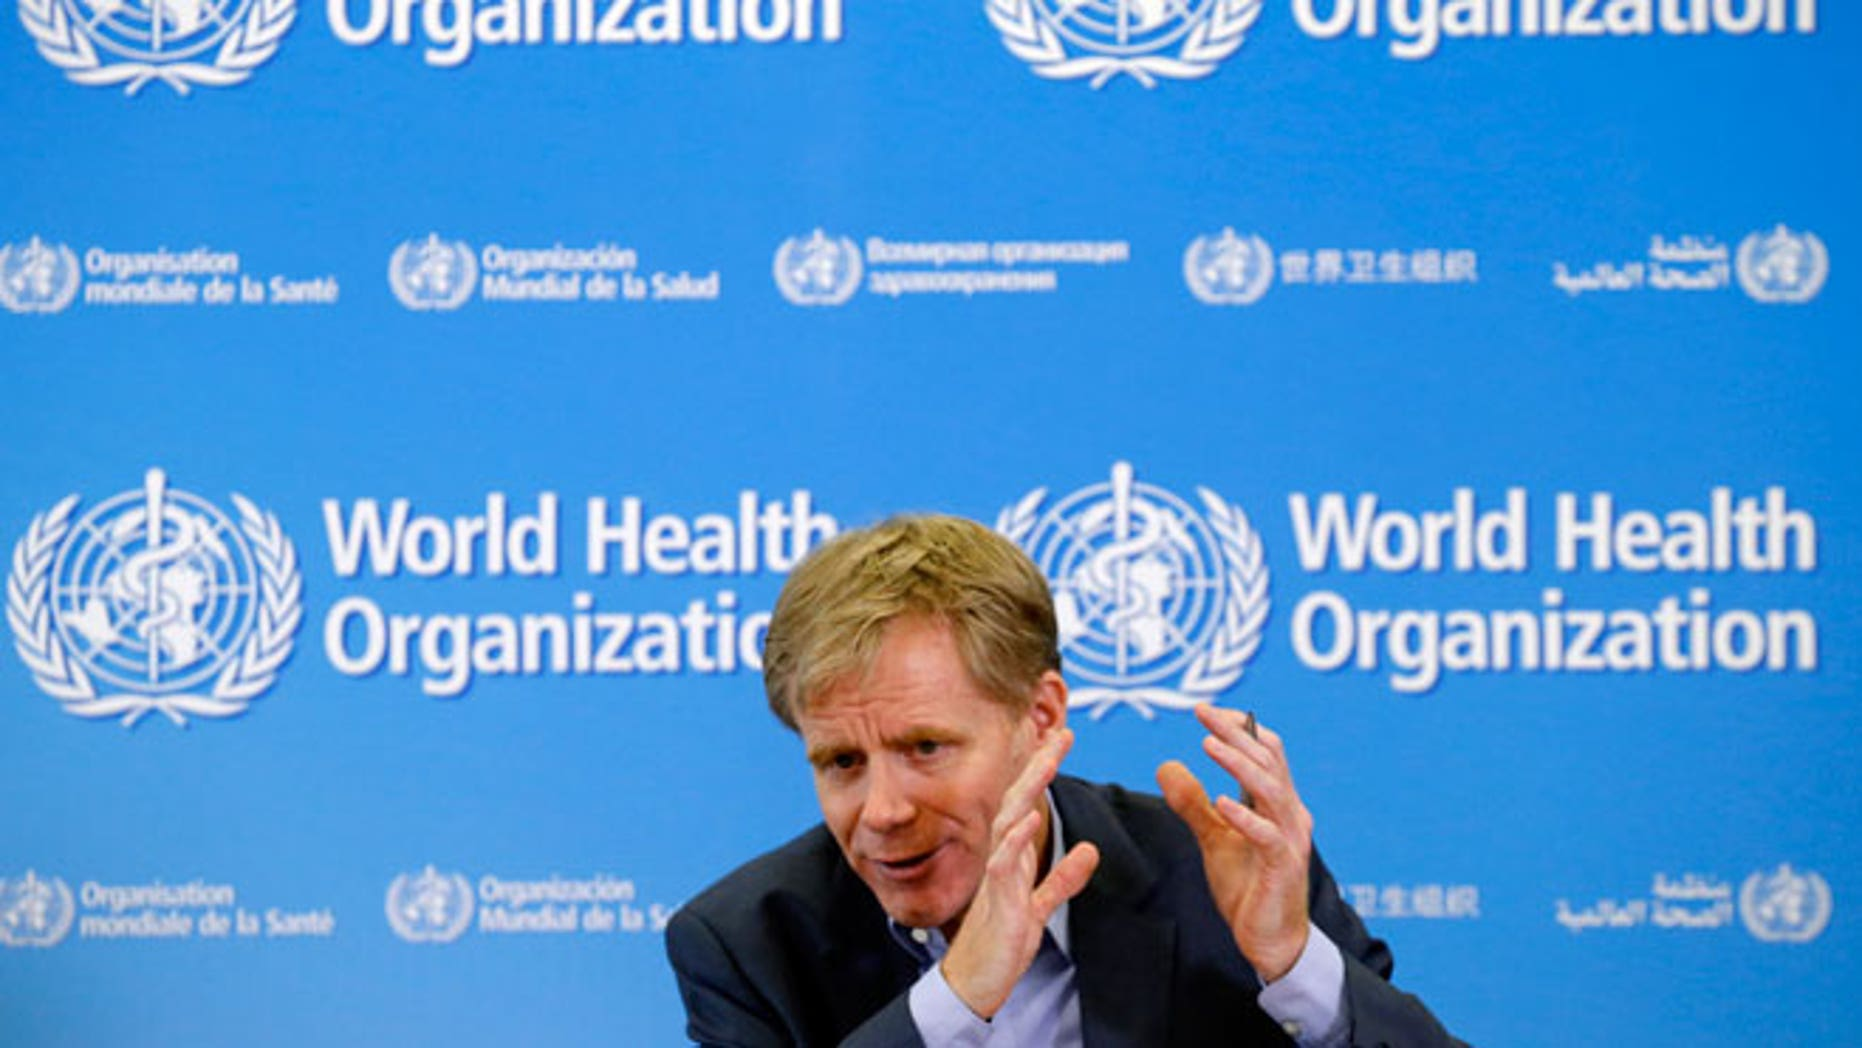 WHO Assistant Director General Bruce Aylward gestures during a news conference at the organization's headquarters in Geneva Oct. 29, 2014.